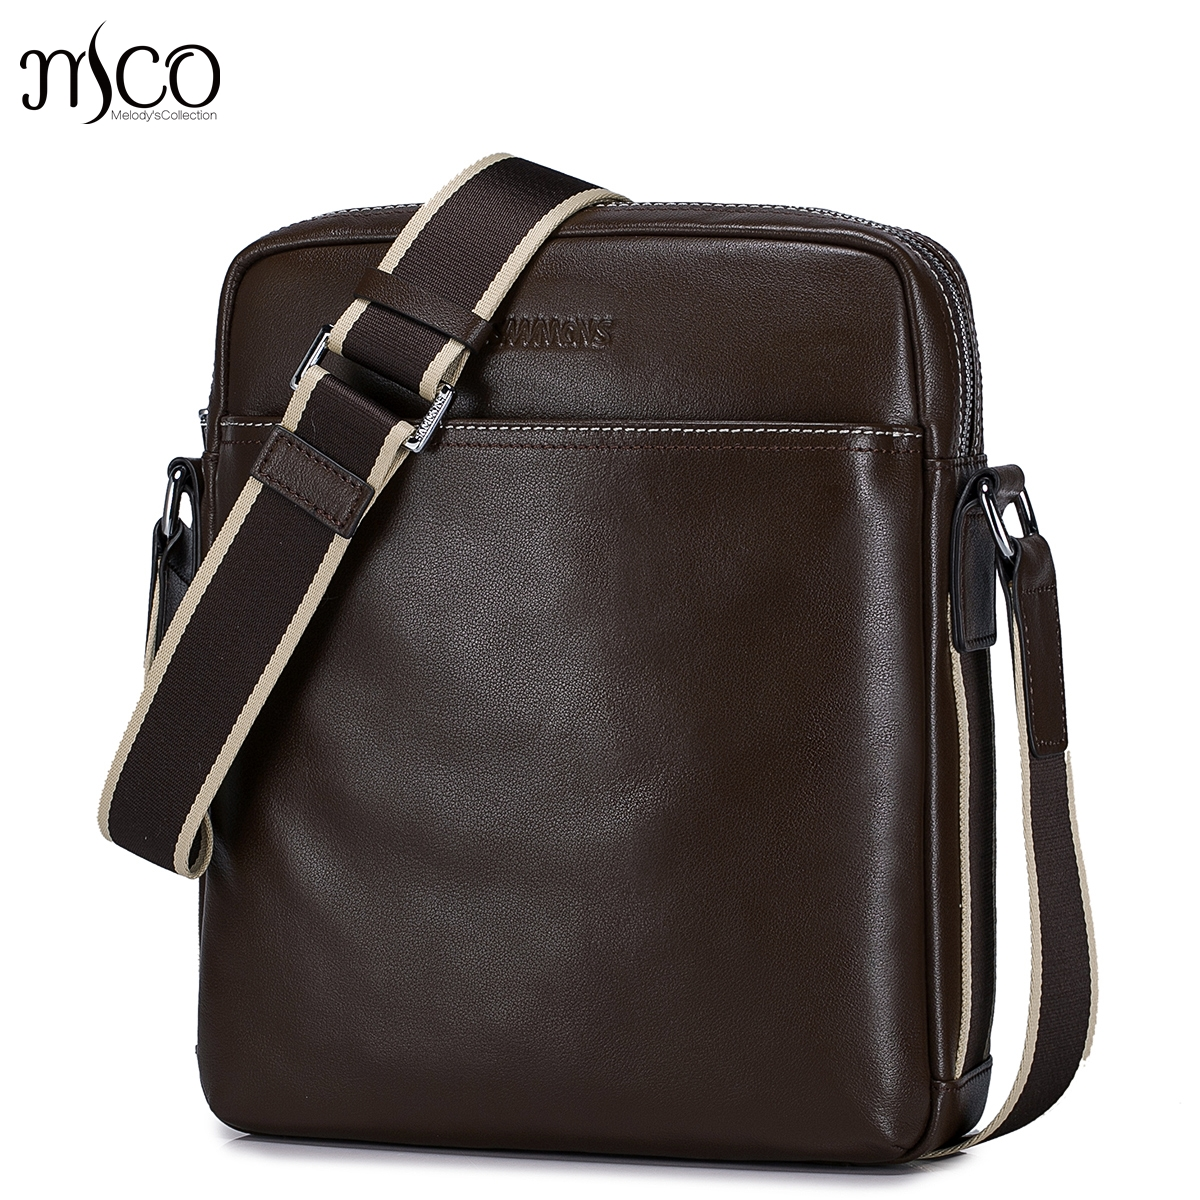 Luxury Men Bag Genuine Leather Business Male Crossbody Shoulder Messenger Bags Leisure Small Flap Bag neweekend genuine leather bag men bags shoulder crossbody bags messenger small flap casual handbags male leather bag new 5867